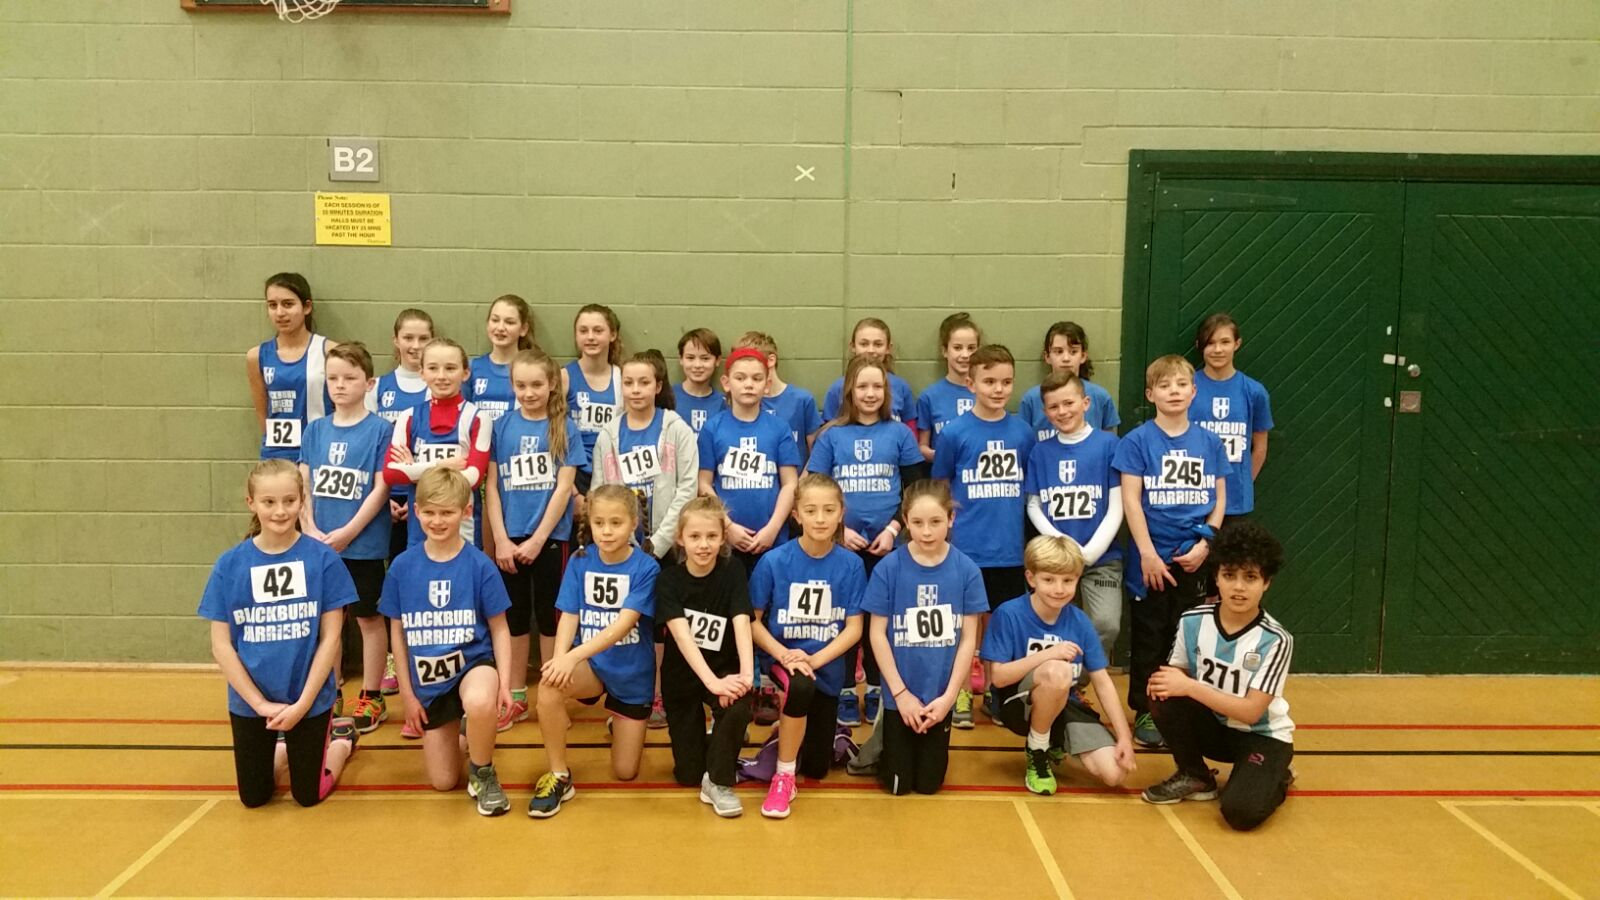 Harriers youngsters shine again at Sportshall Competition in Blackpool